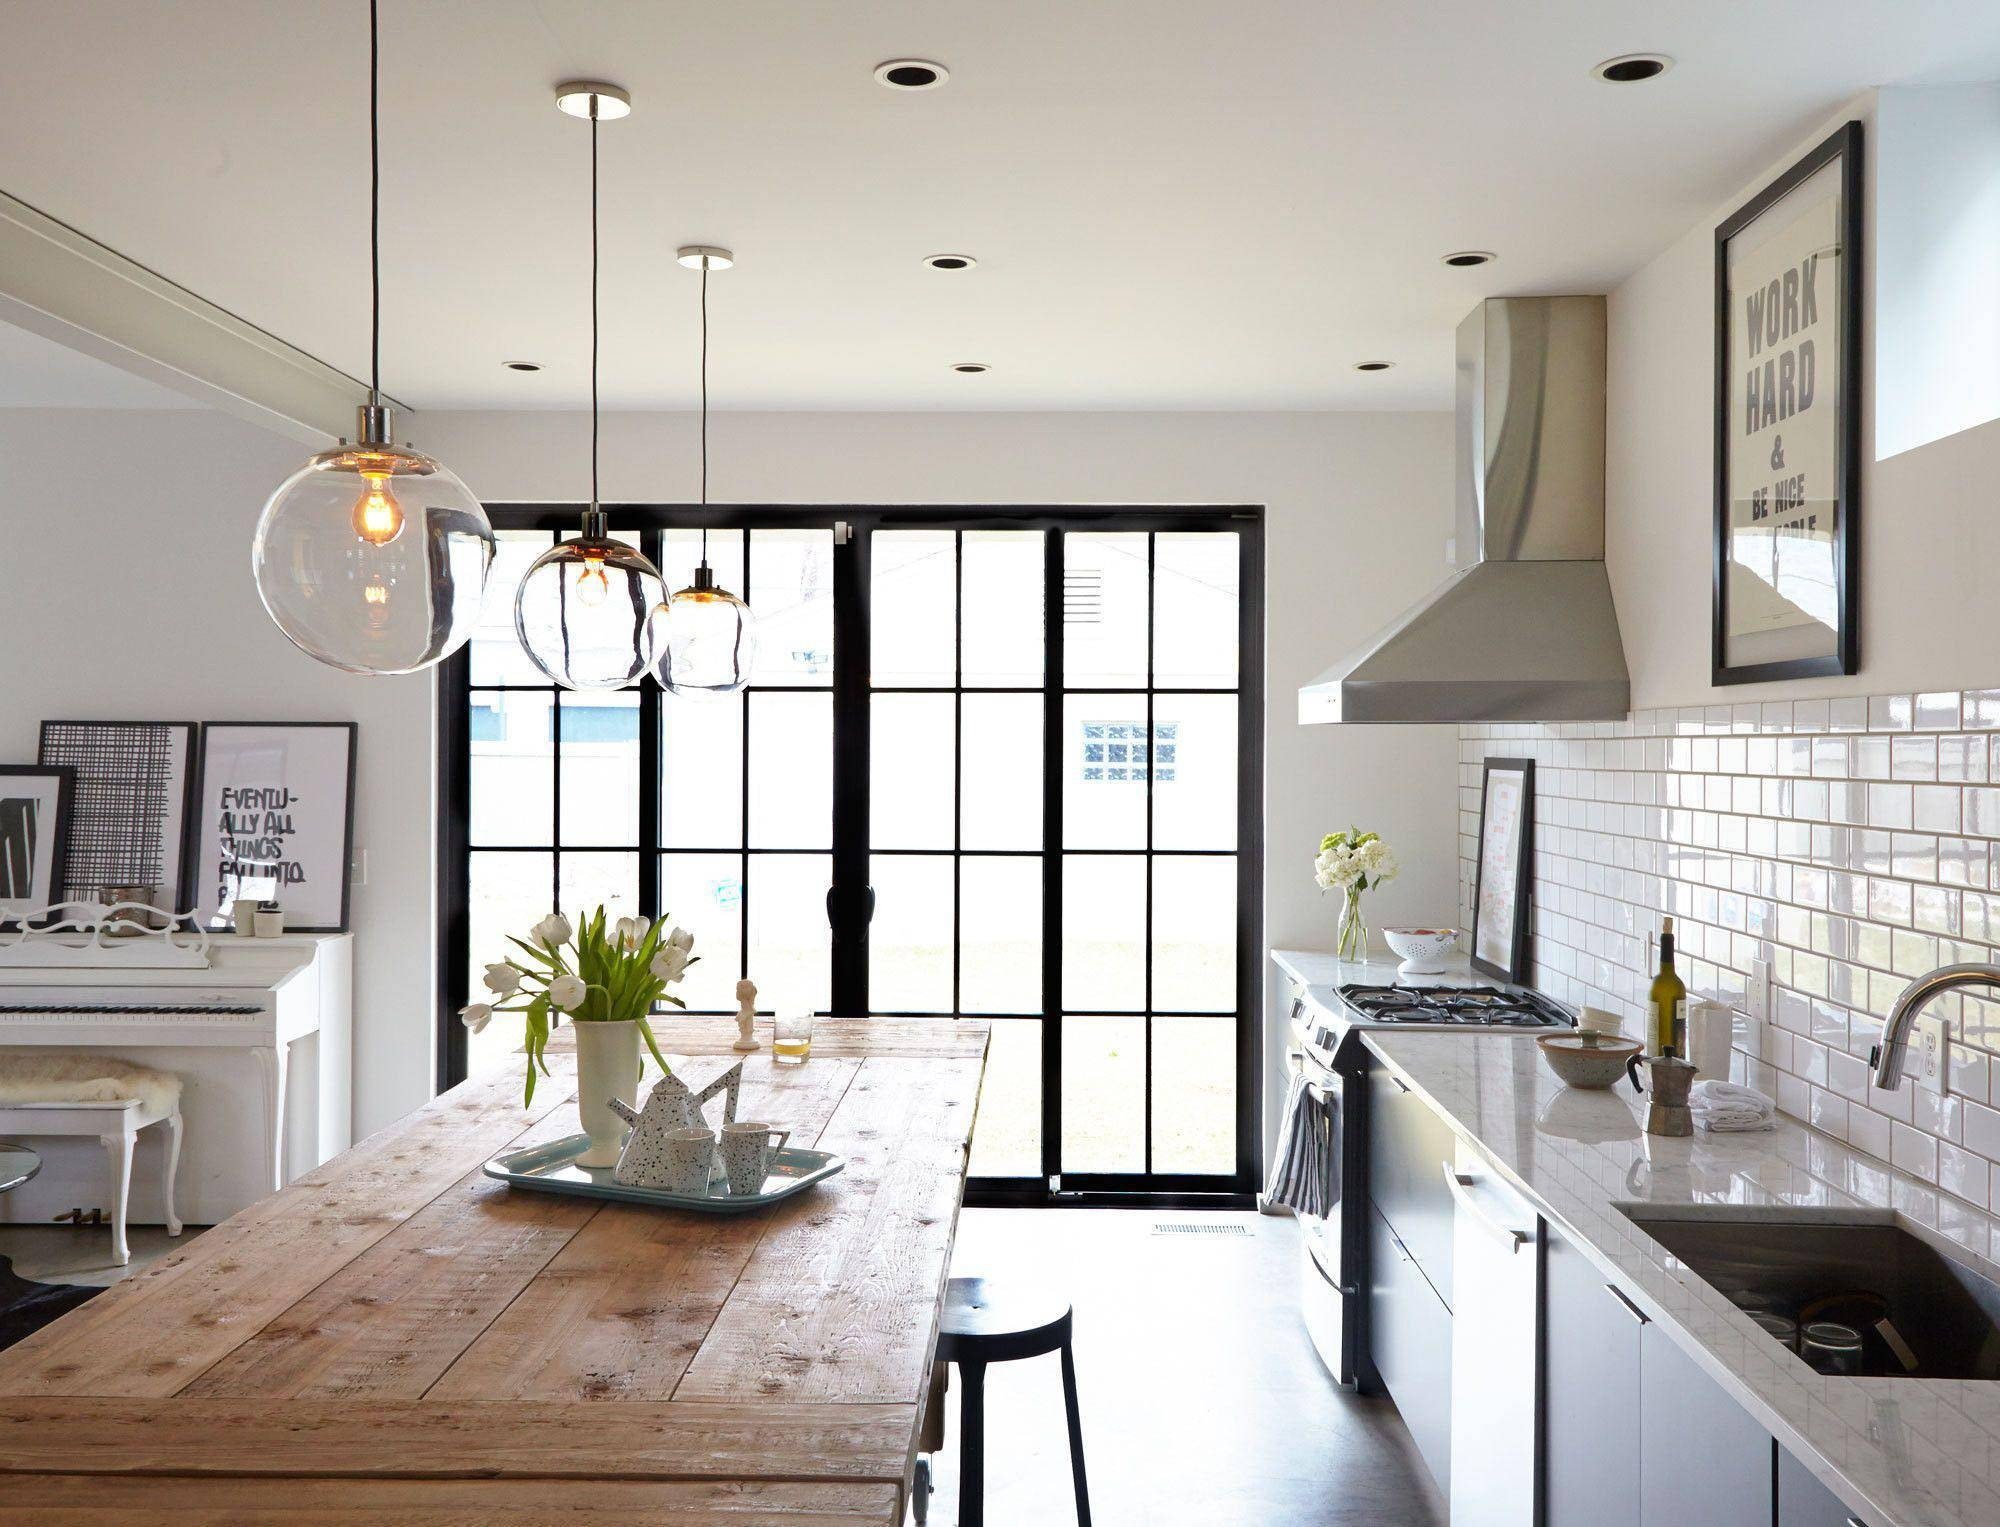 Kitchen Pendant Lights For Best Ideas On Midcentury Lighting And Pertaining To Kitchen Pendant Lighting (View 14 of 15)